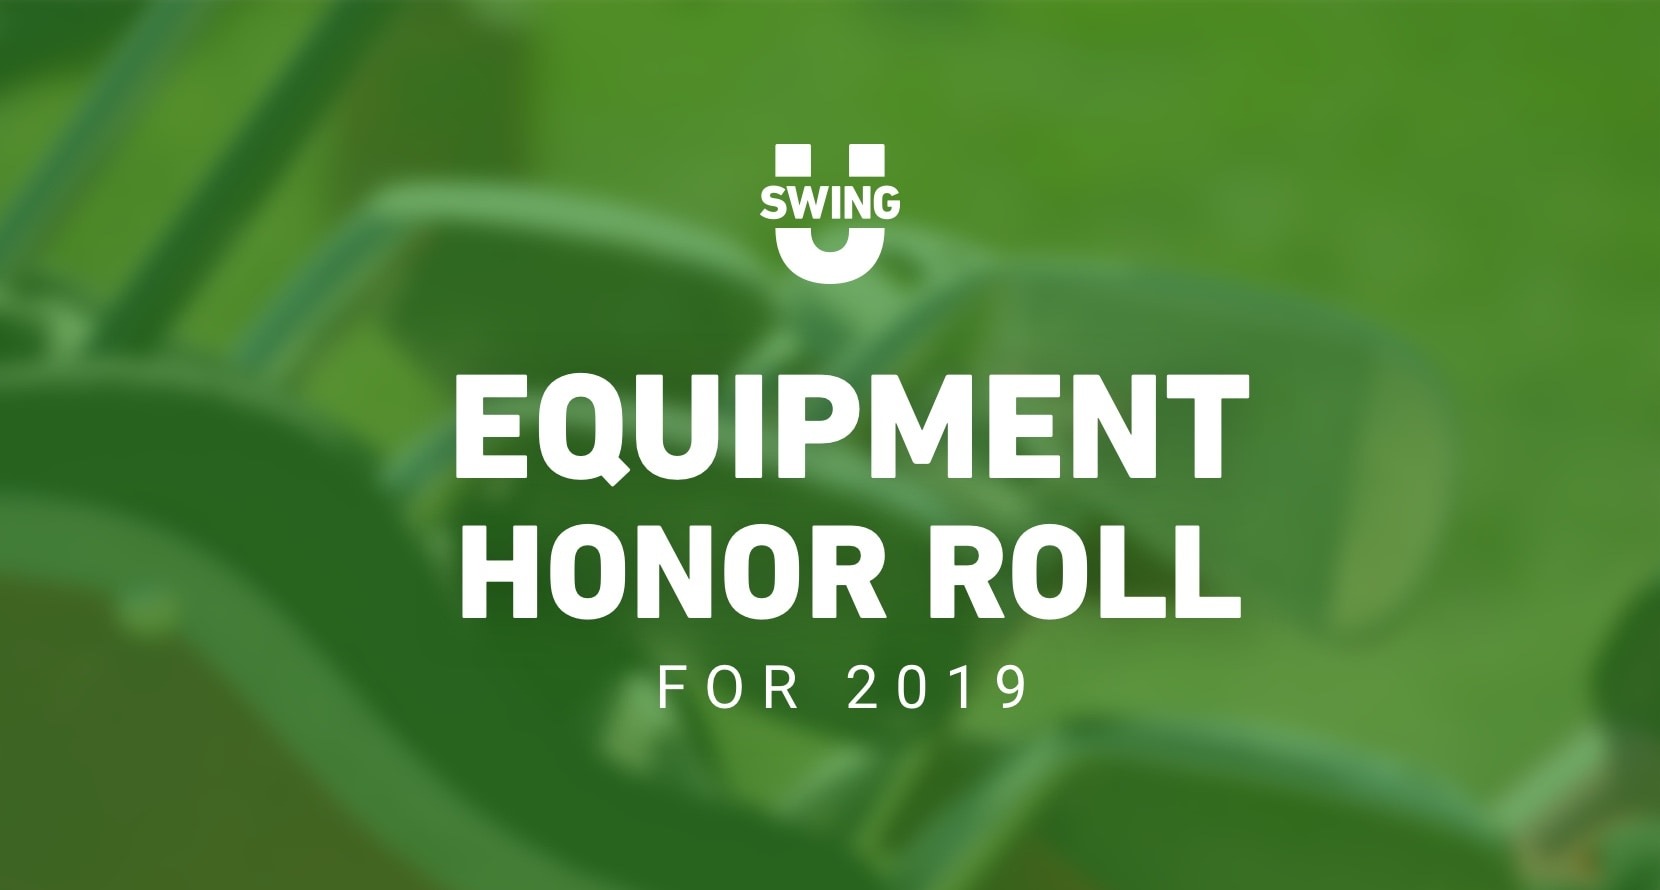 2019 Honor Roll: Golf Balls